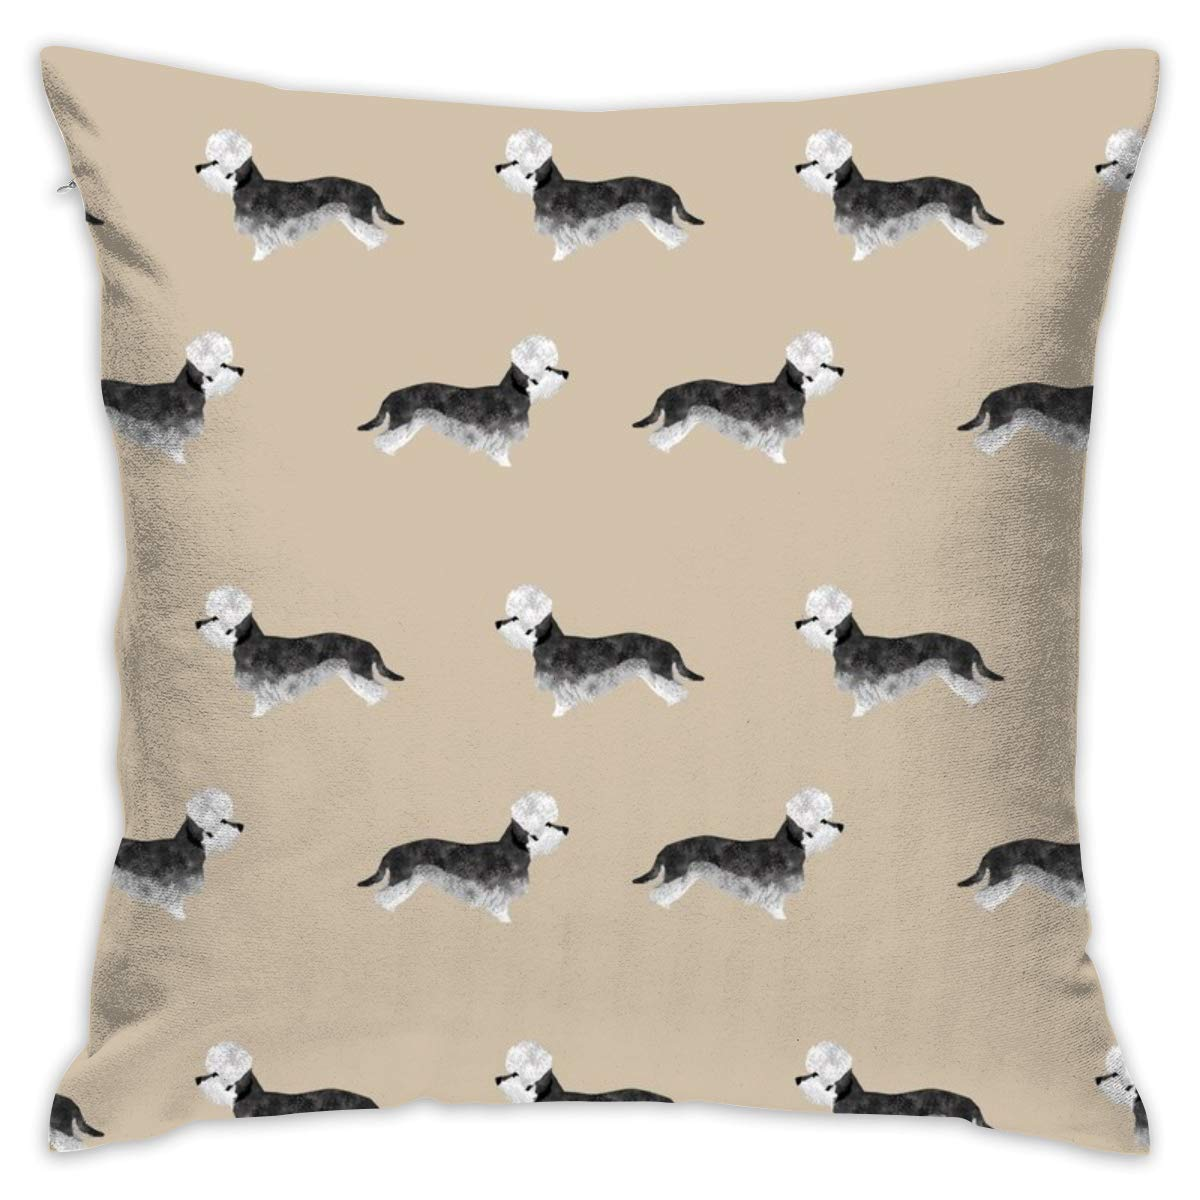 Mabell Beautifully decorated home Dandie Dinmont Terrier – Pepper Dog Coat, Dandie Dinmont Dog, Terrier Dog, Dog Breed – Khaki Throw Pillow Case 18X18 Inches